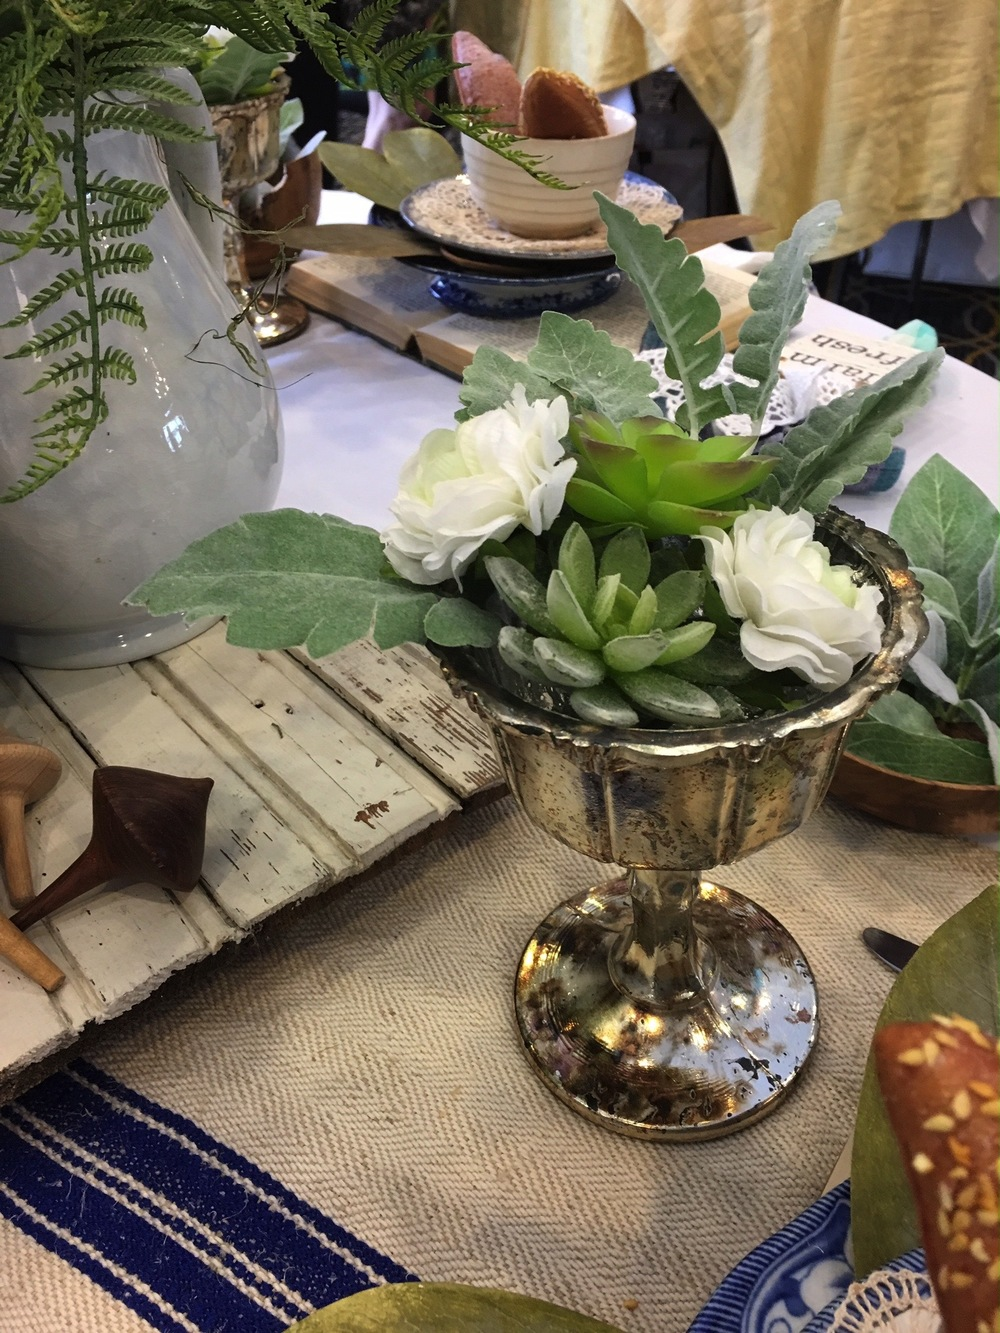 A charming tablescape from Leslie Harris of The Farmhouse Interior Design at the 2016 Festival of Tables. The deadline is quickly approaching for designers to showcase their creativity at this year's event, which will be held April 18 from 10 a.m. to 1 p.m. at the Sheraton uptown.